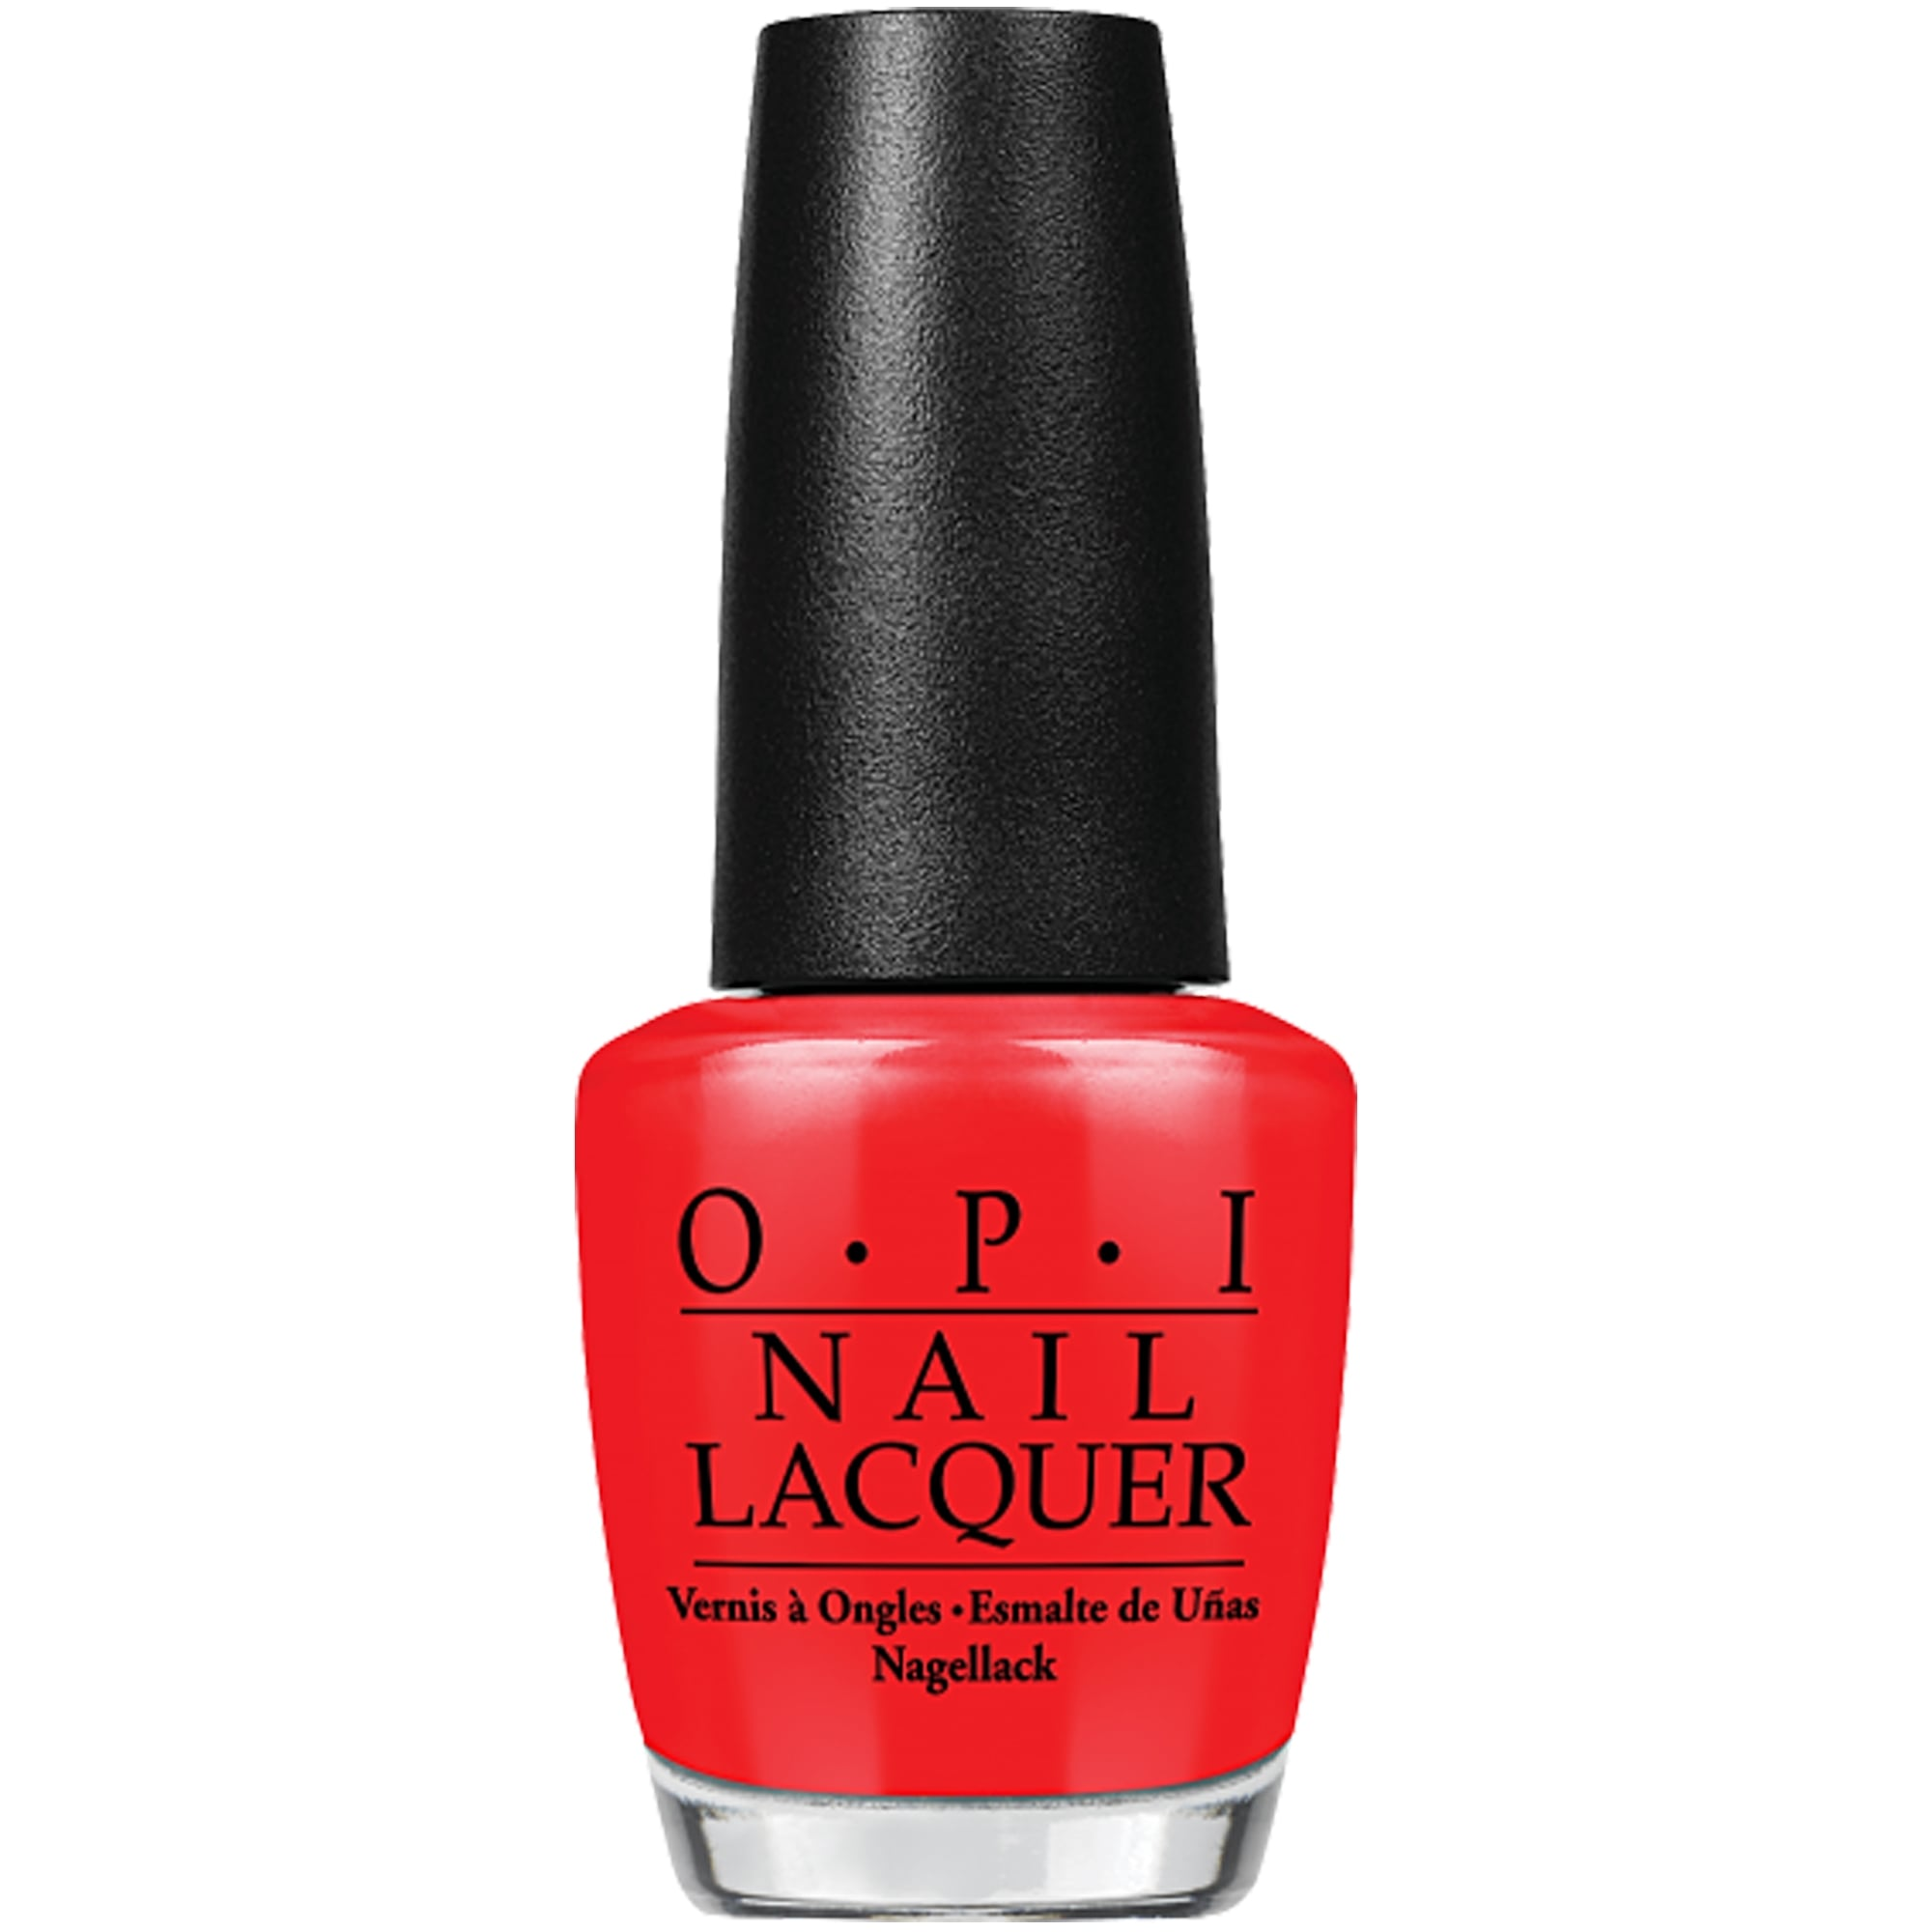 OPI Nail Lacquer - The Thrill of Brazil | Turn Beautiful